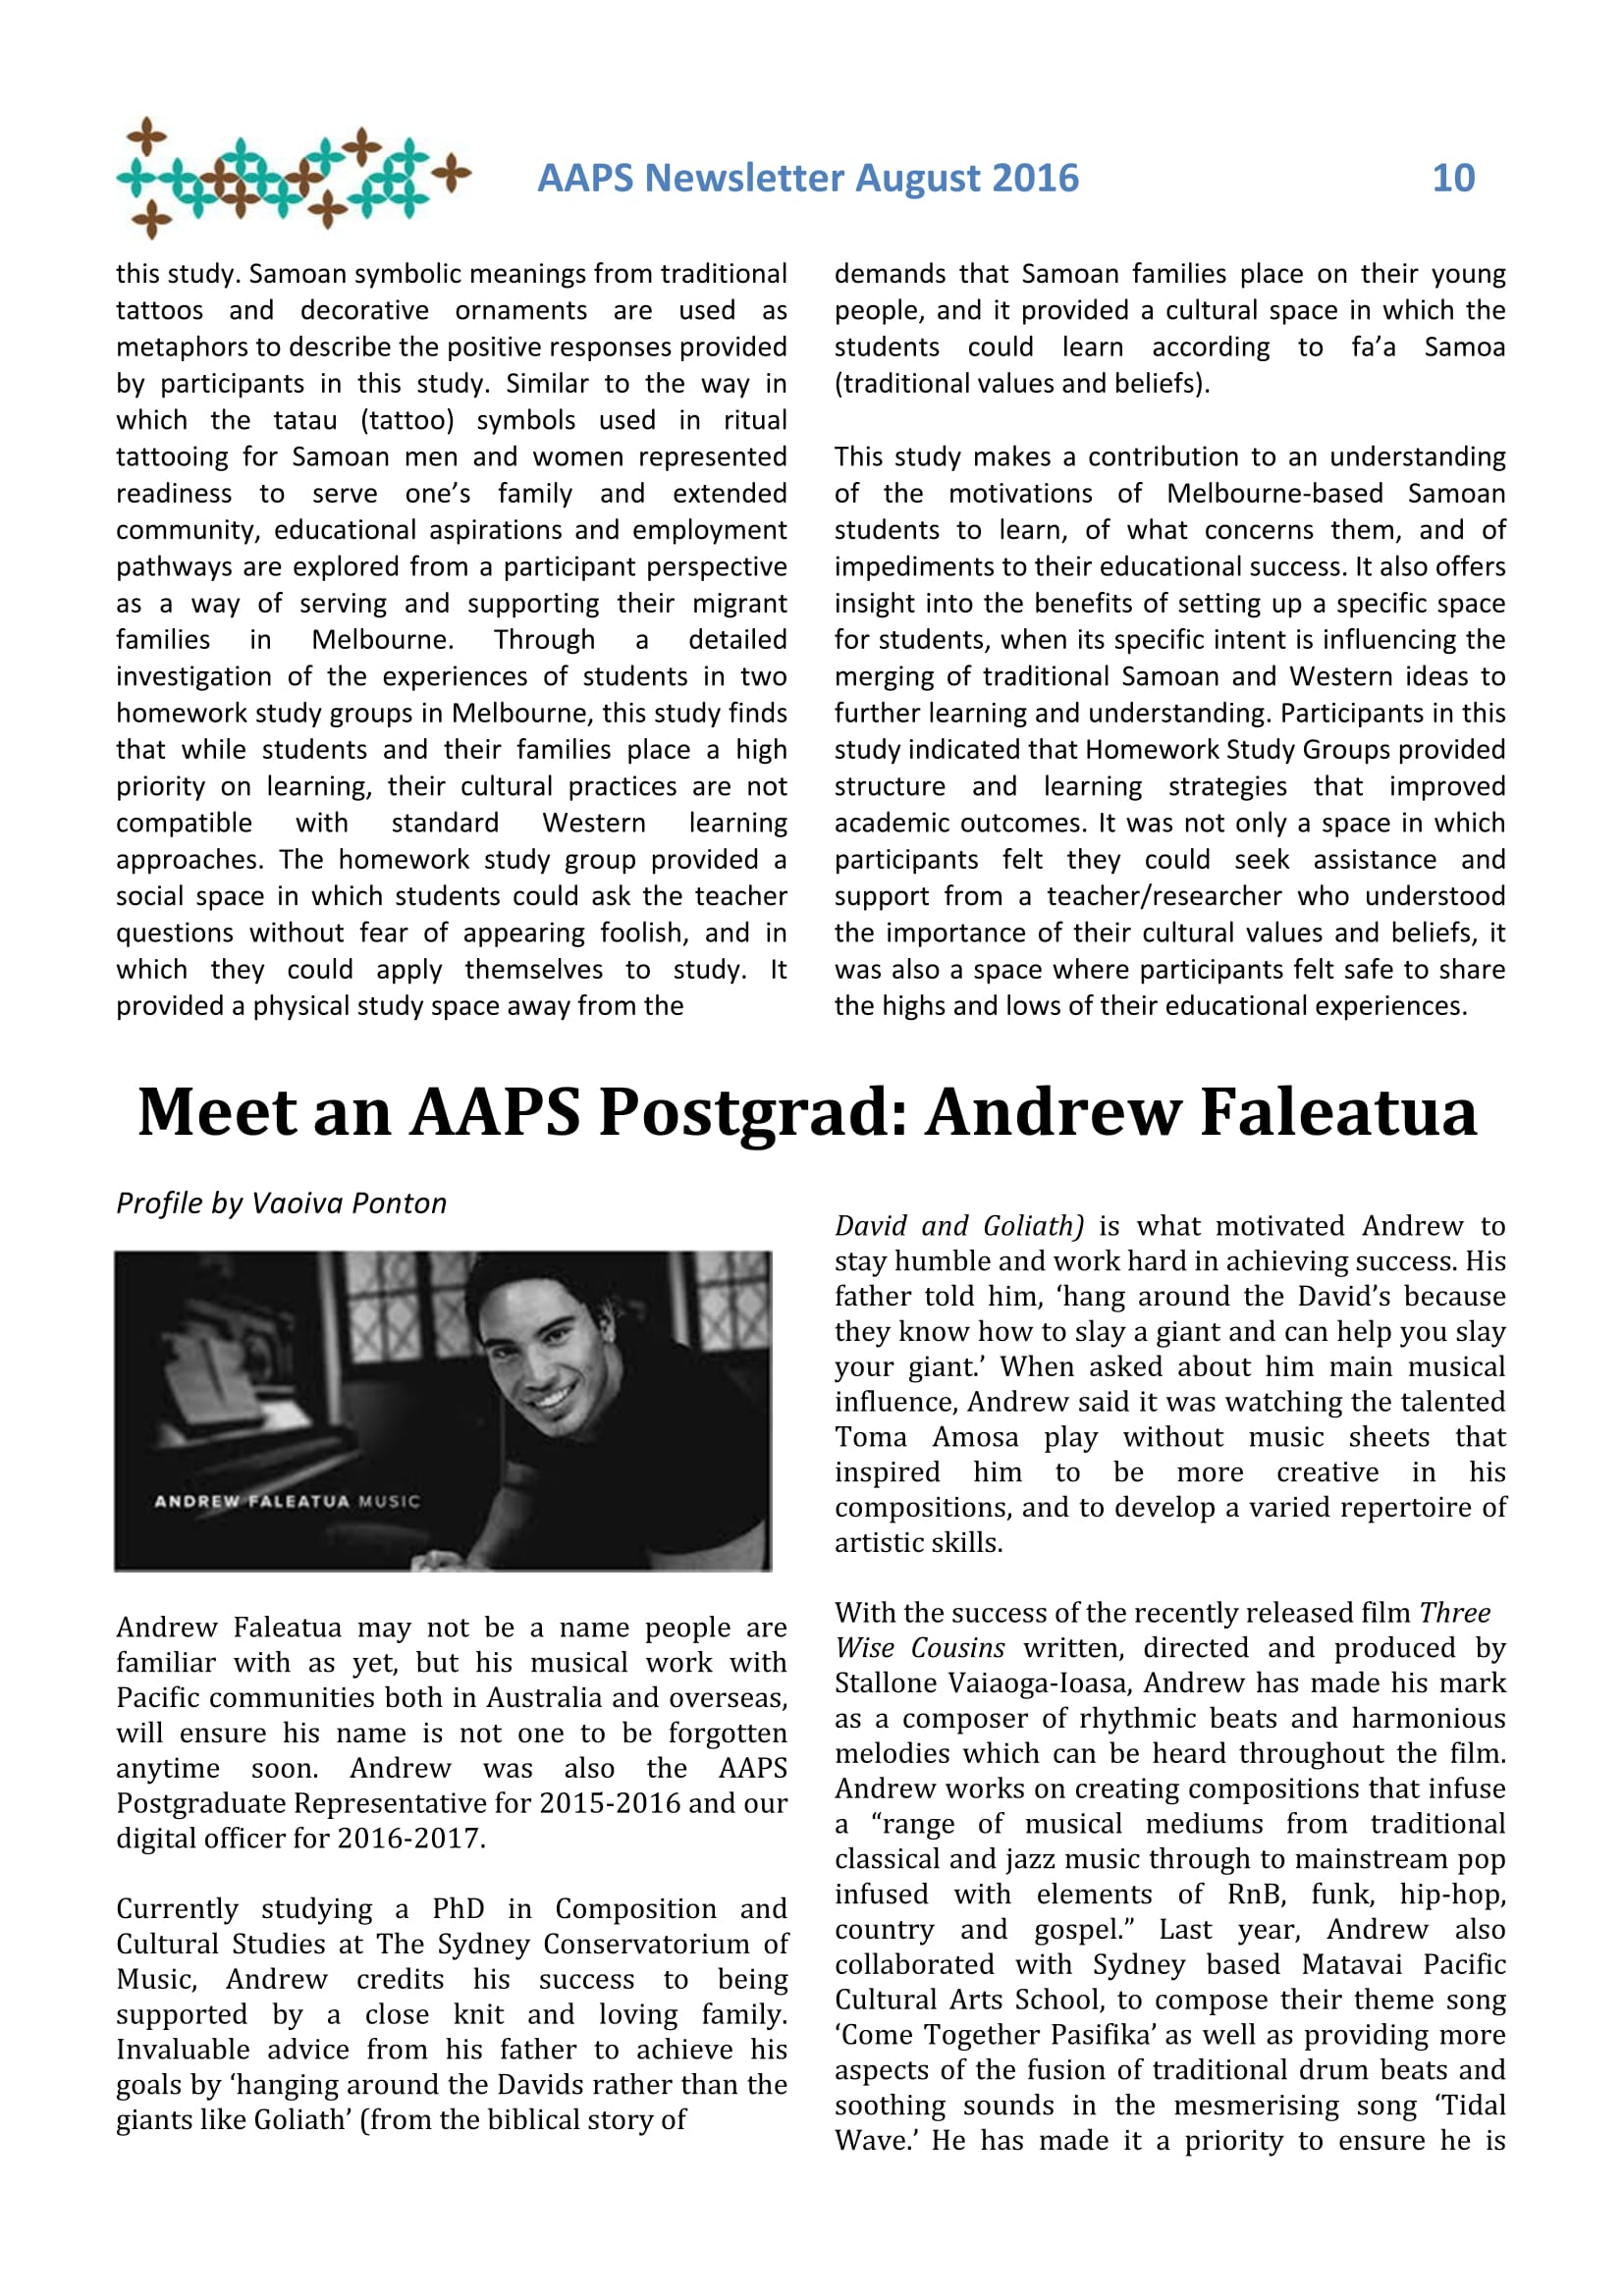 AAPS newsletter August 2016-10